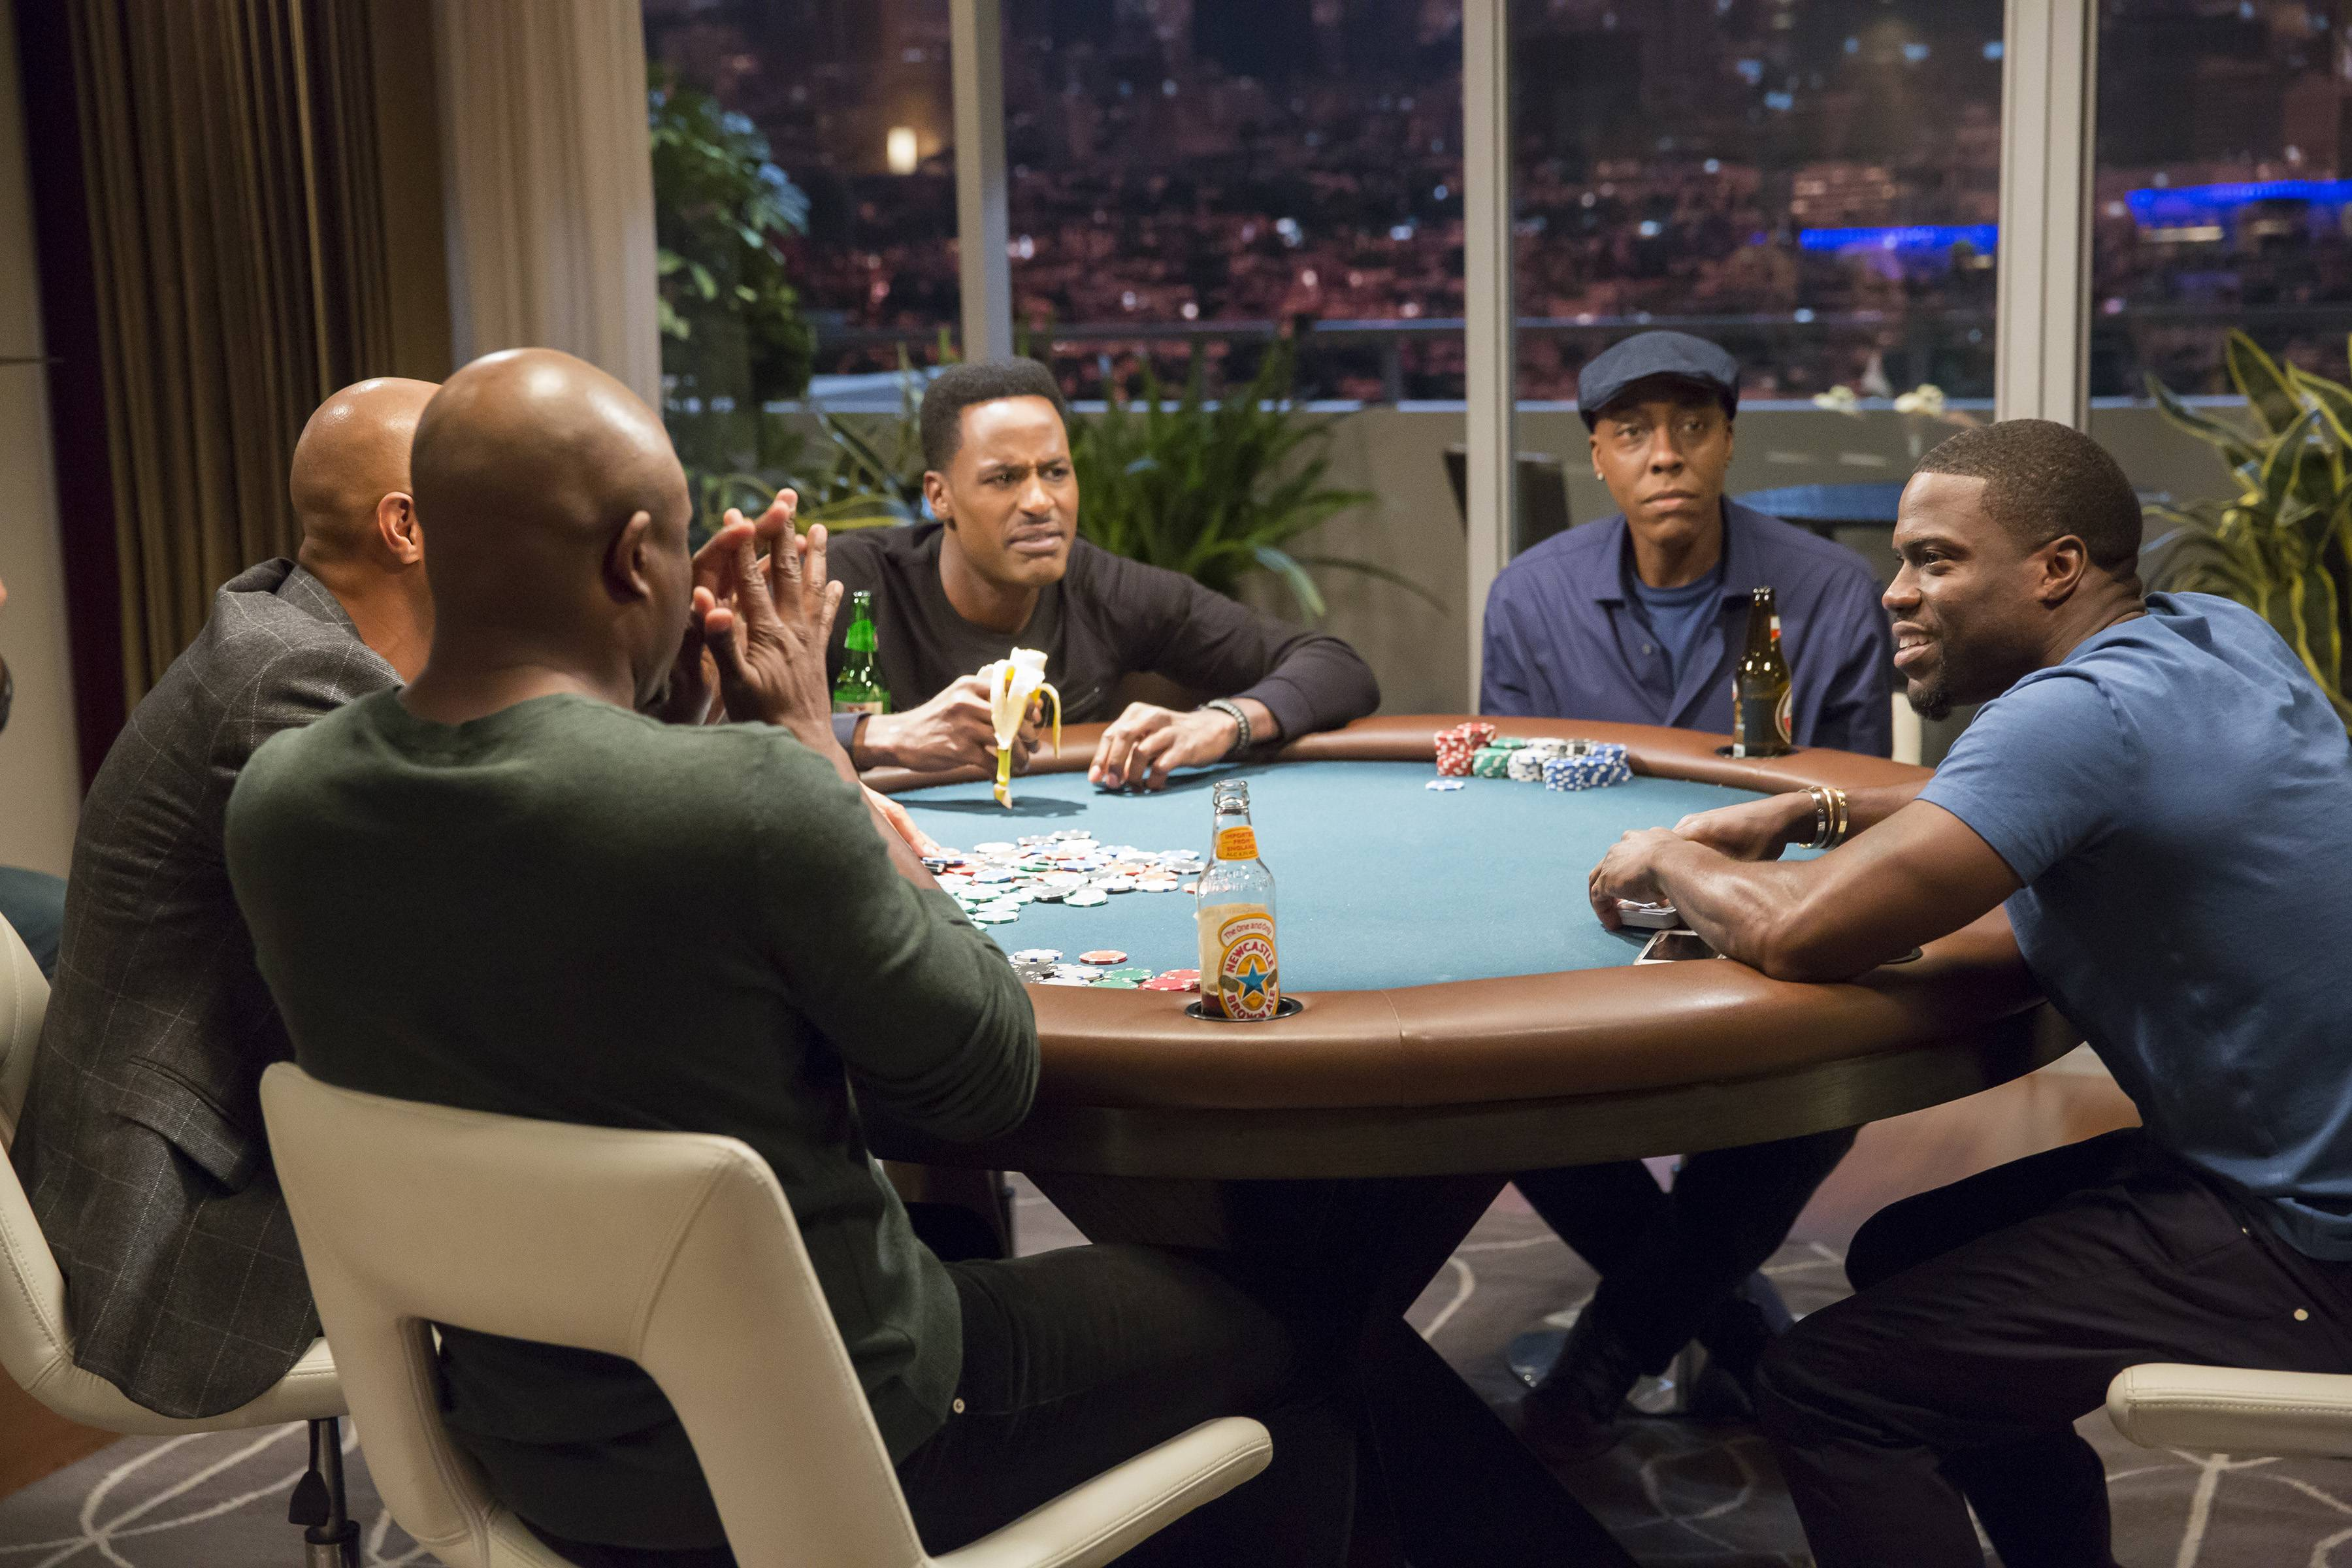 Kevin gets whipped in poker but isn't crying like a lil' mitch this time. - (Photo: BET)